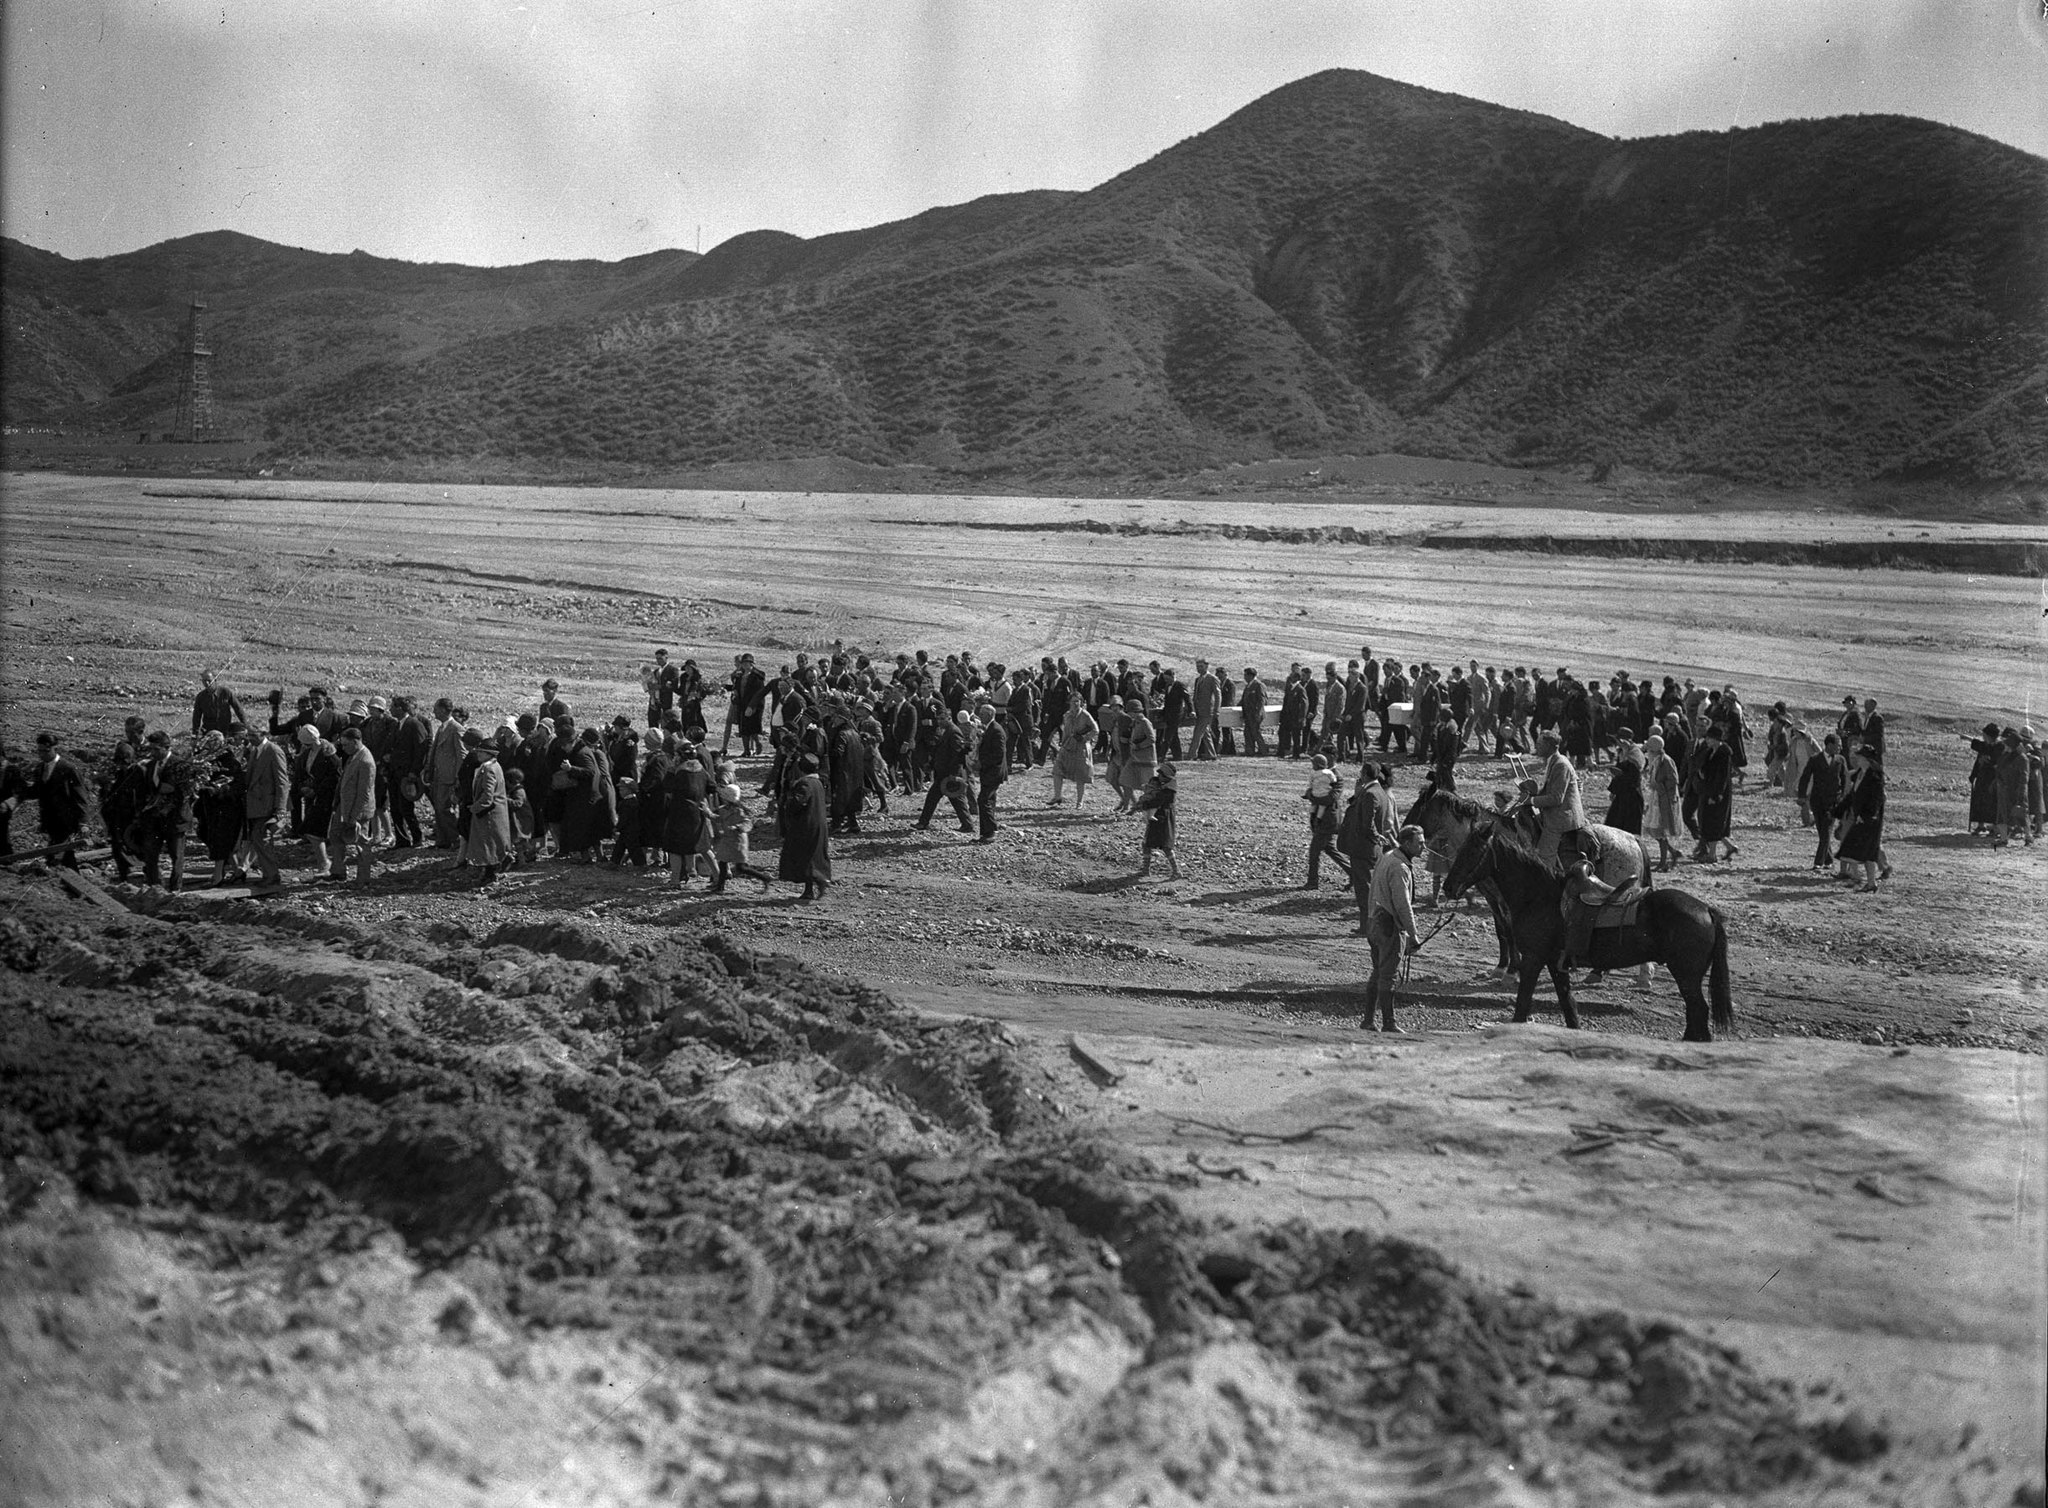 March 1928: Funeral procession proceeds across flood plain following the St. Francis Dam disaster.